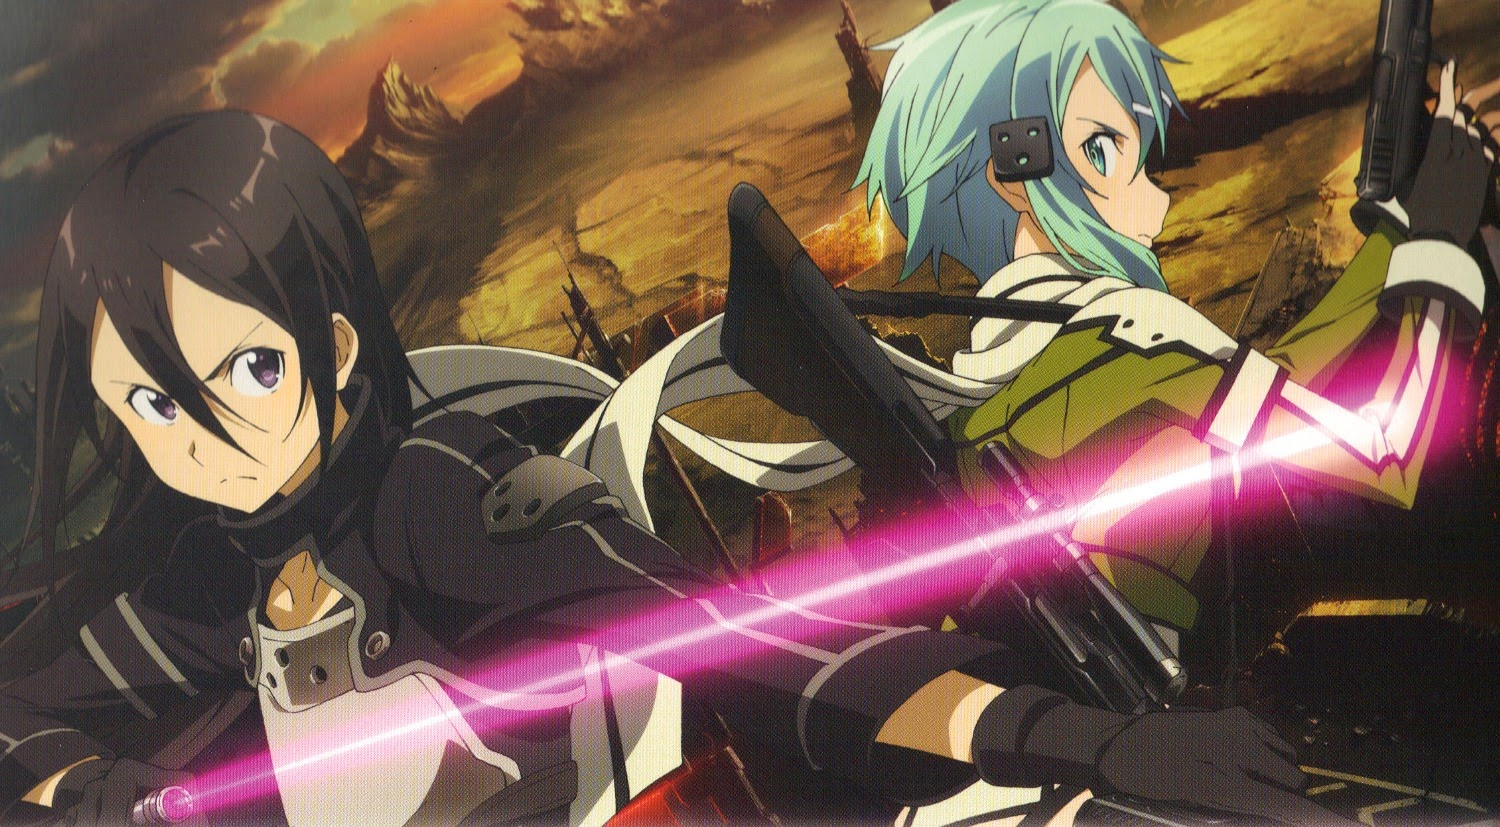 Sinon And Kirito Fight Each Other In The Qualifying Rounds Reach An Understanding Both Make It Into Ballet Of Bullets During Qualifiers Also